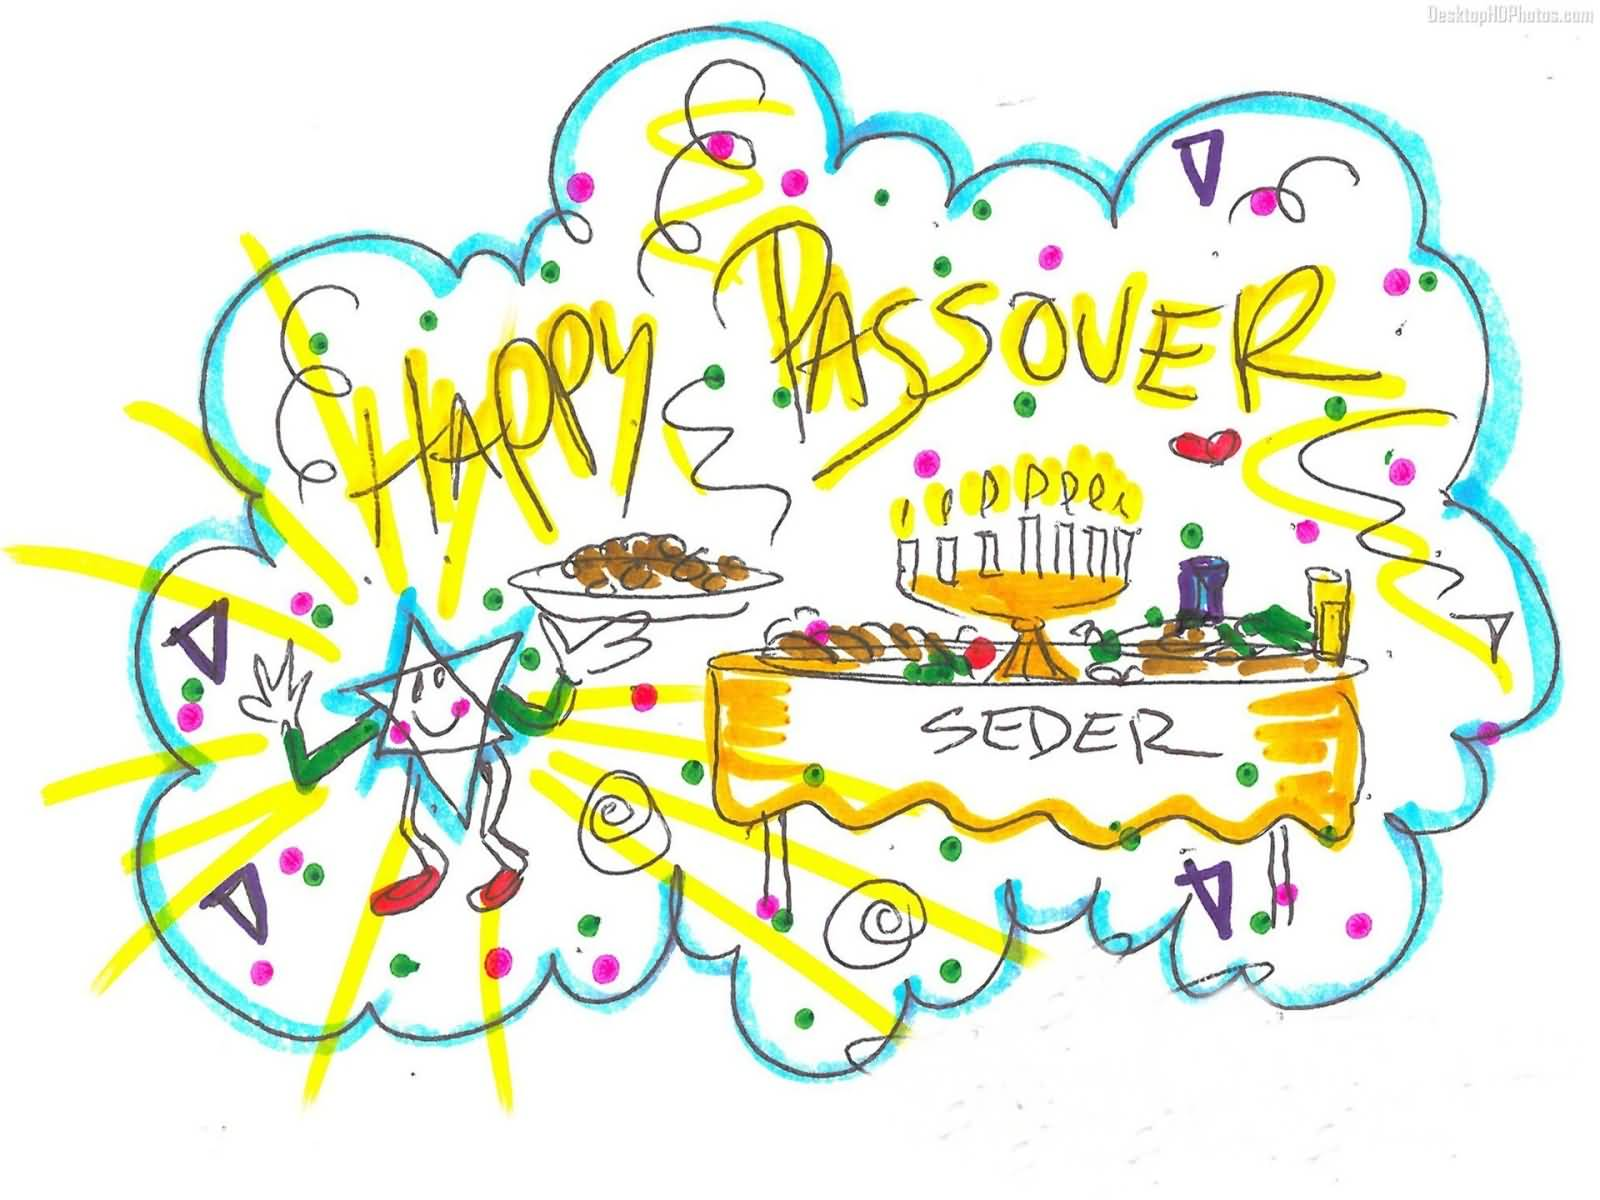 50 Beautiful Passover Greeting Pictures And Images.